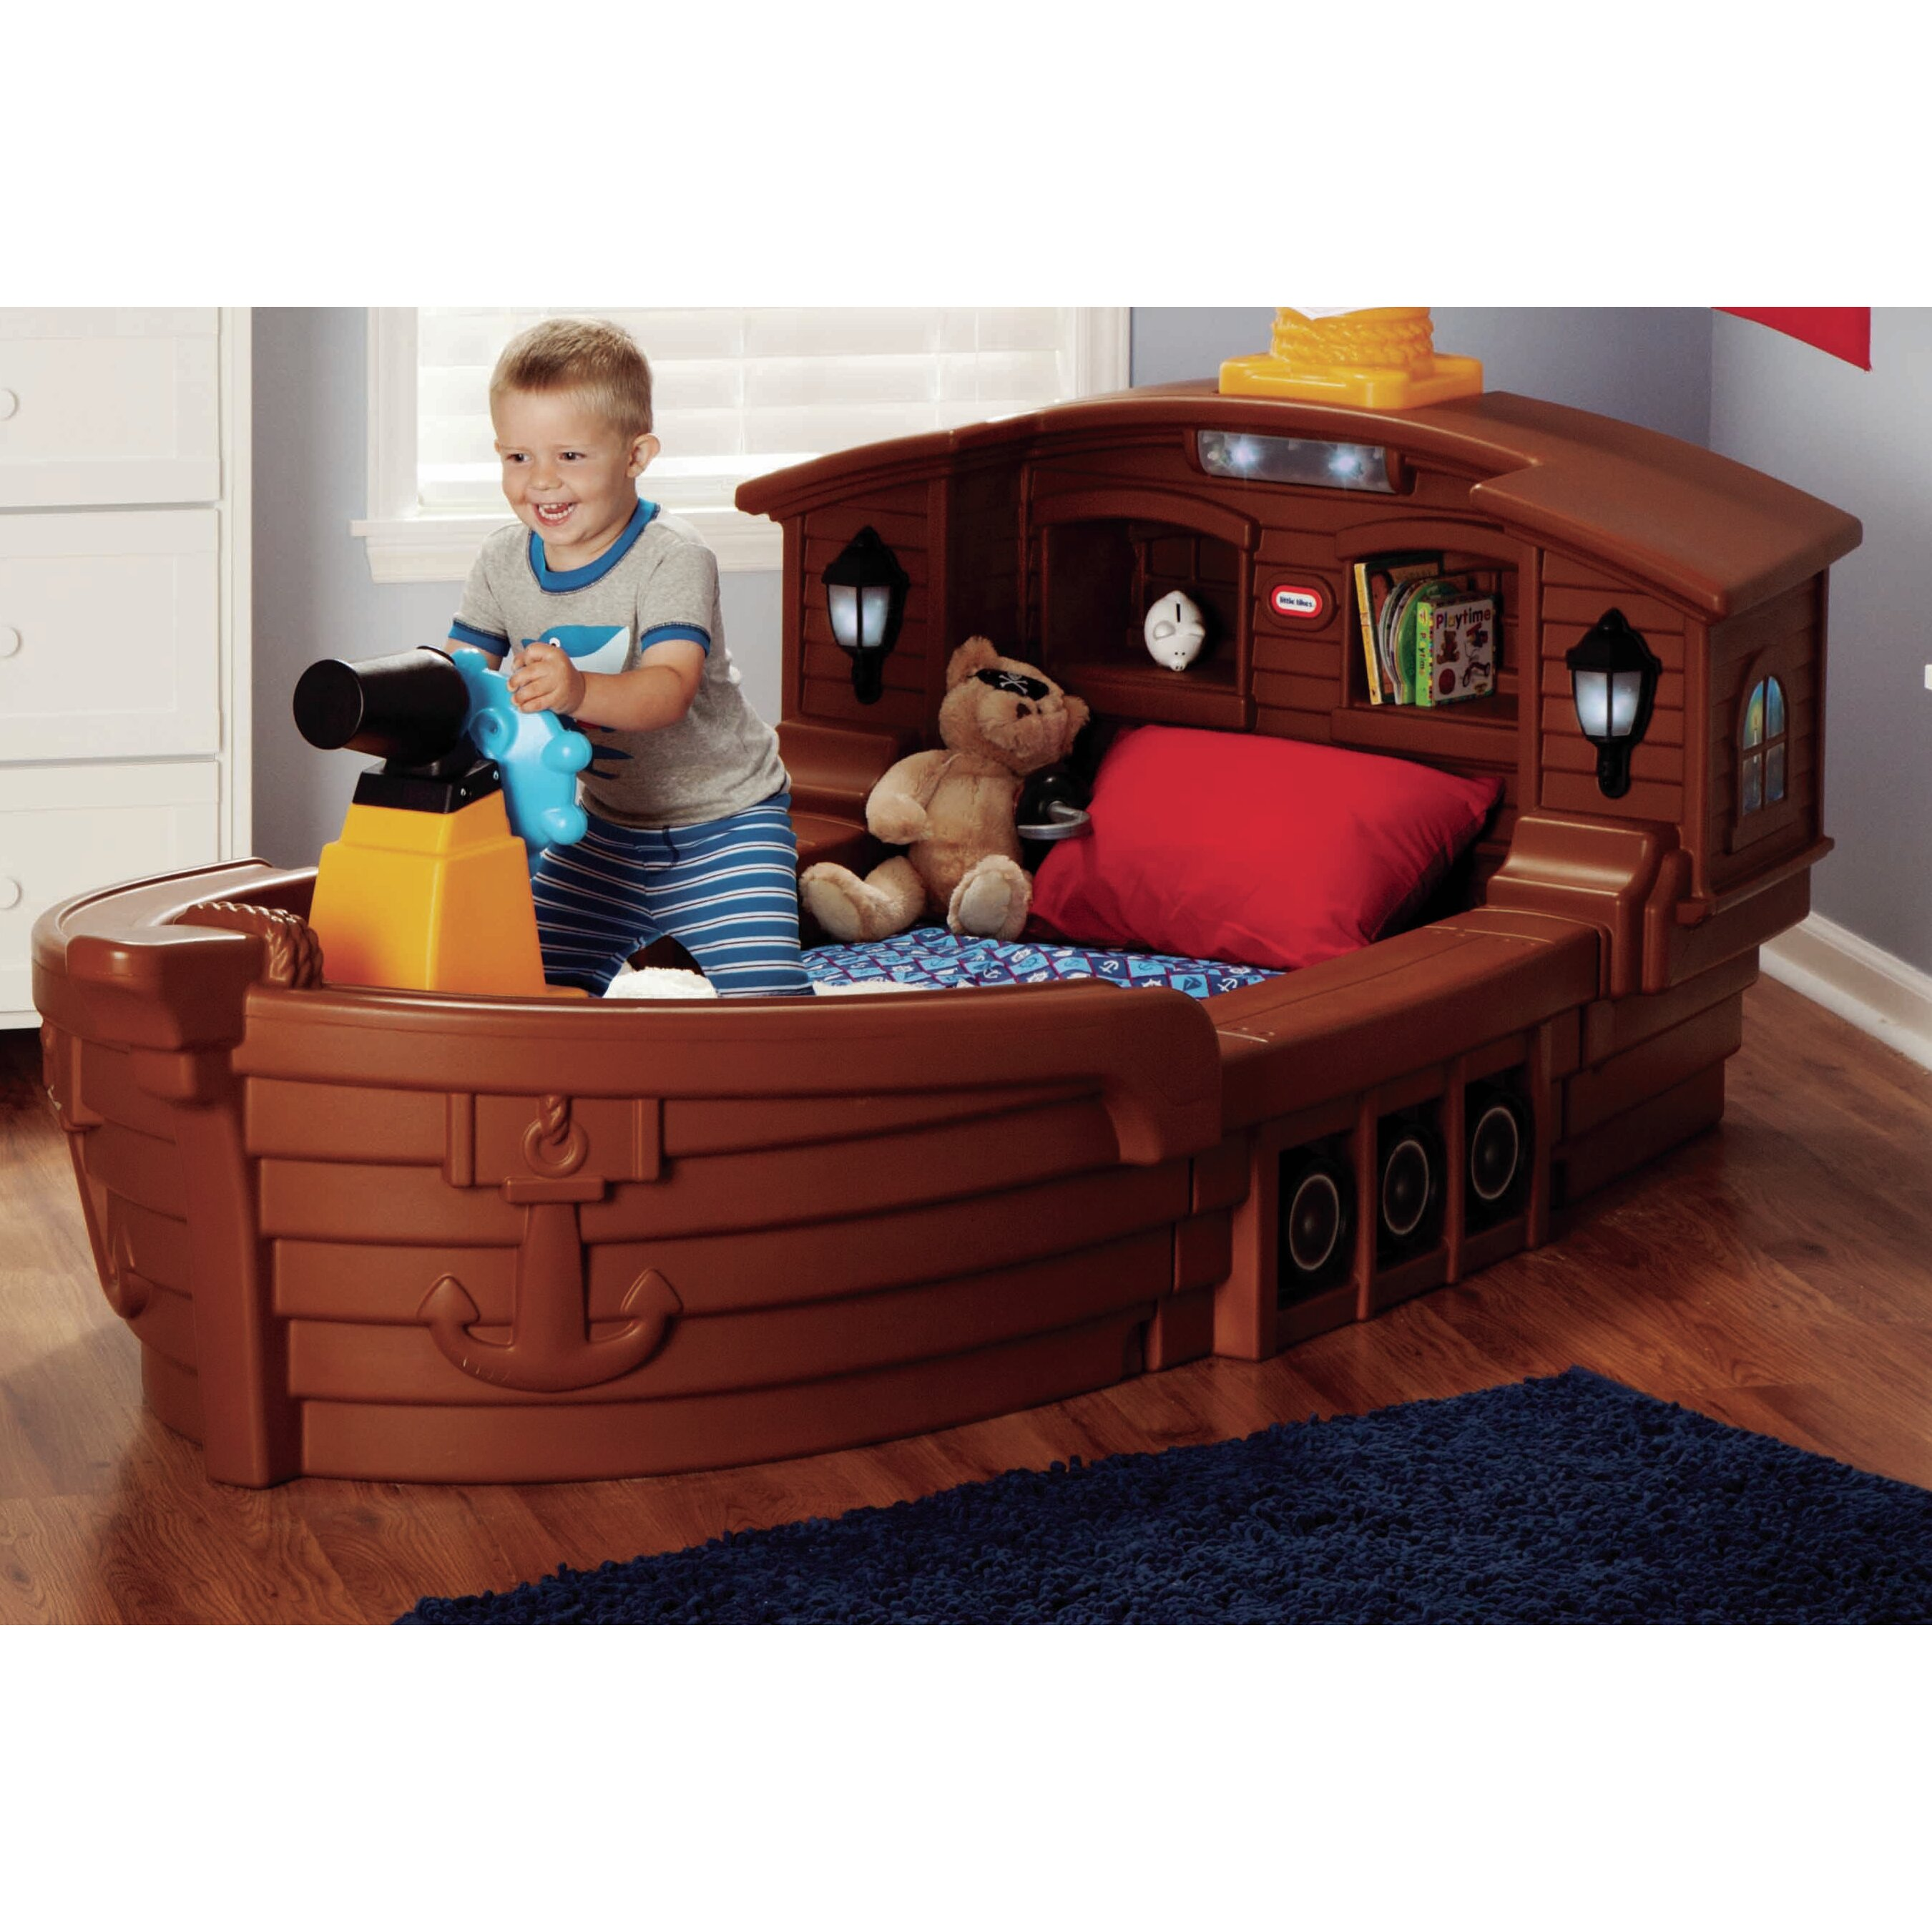 Little Boys Bed: Little Tikes Pirate Ship Toddler Bed & Reviews